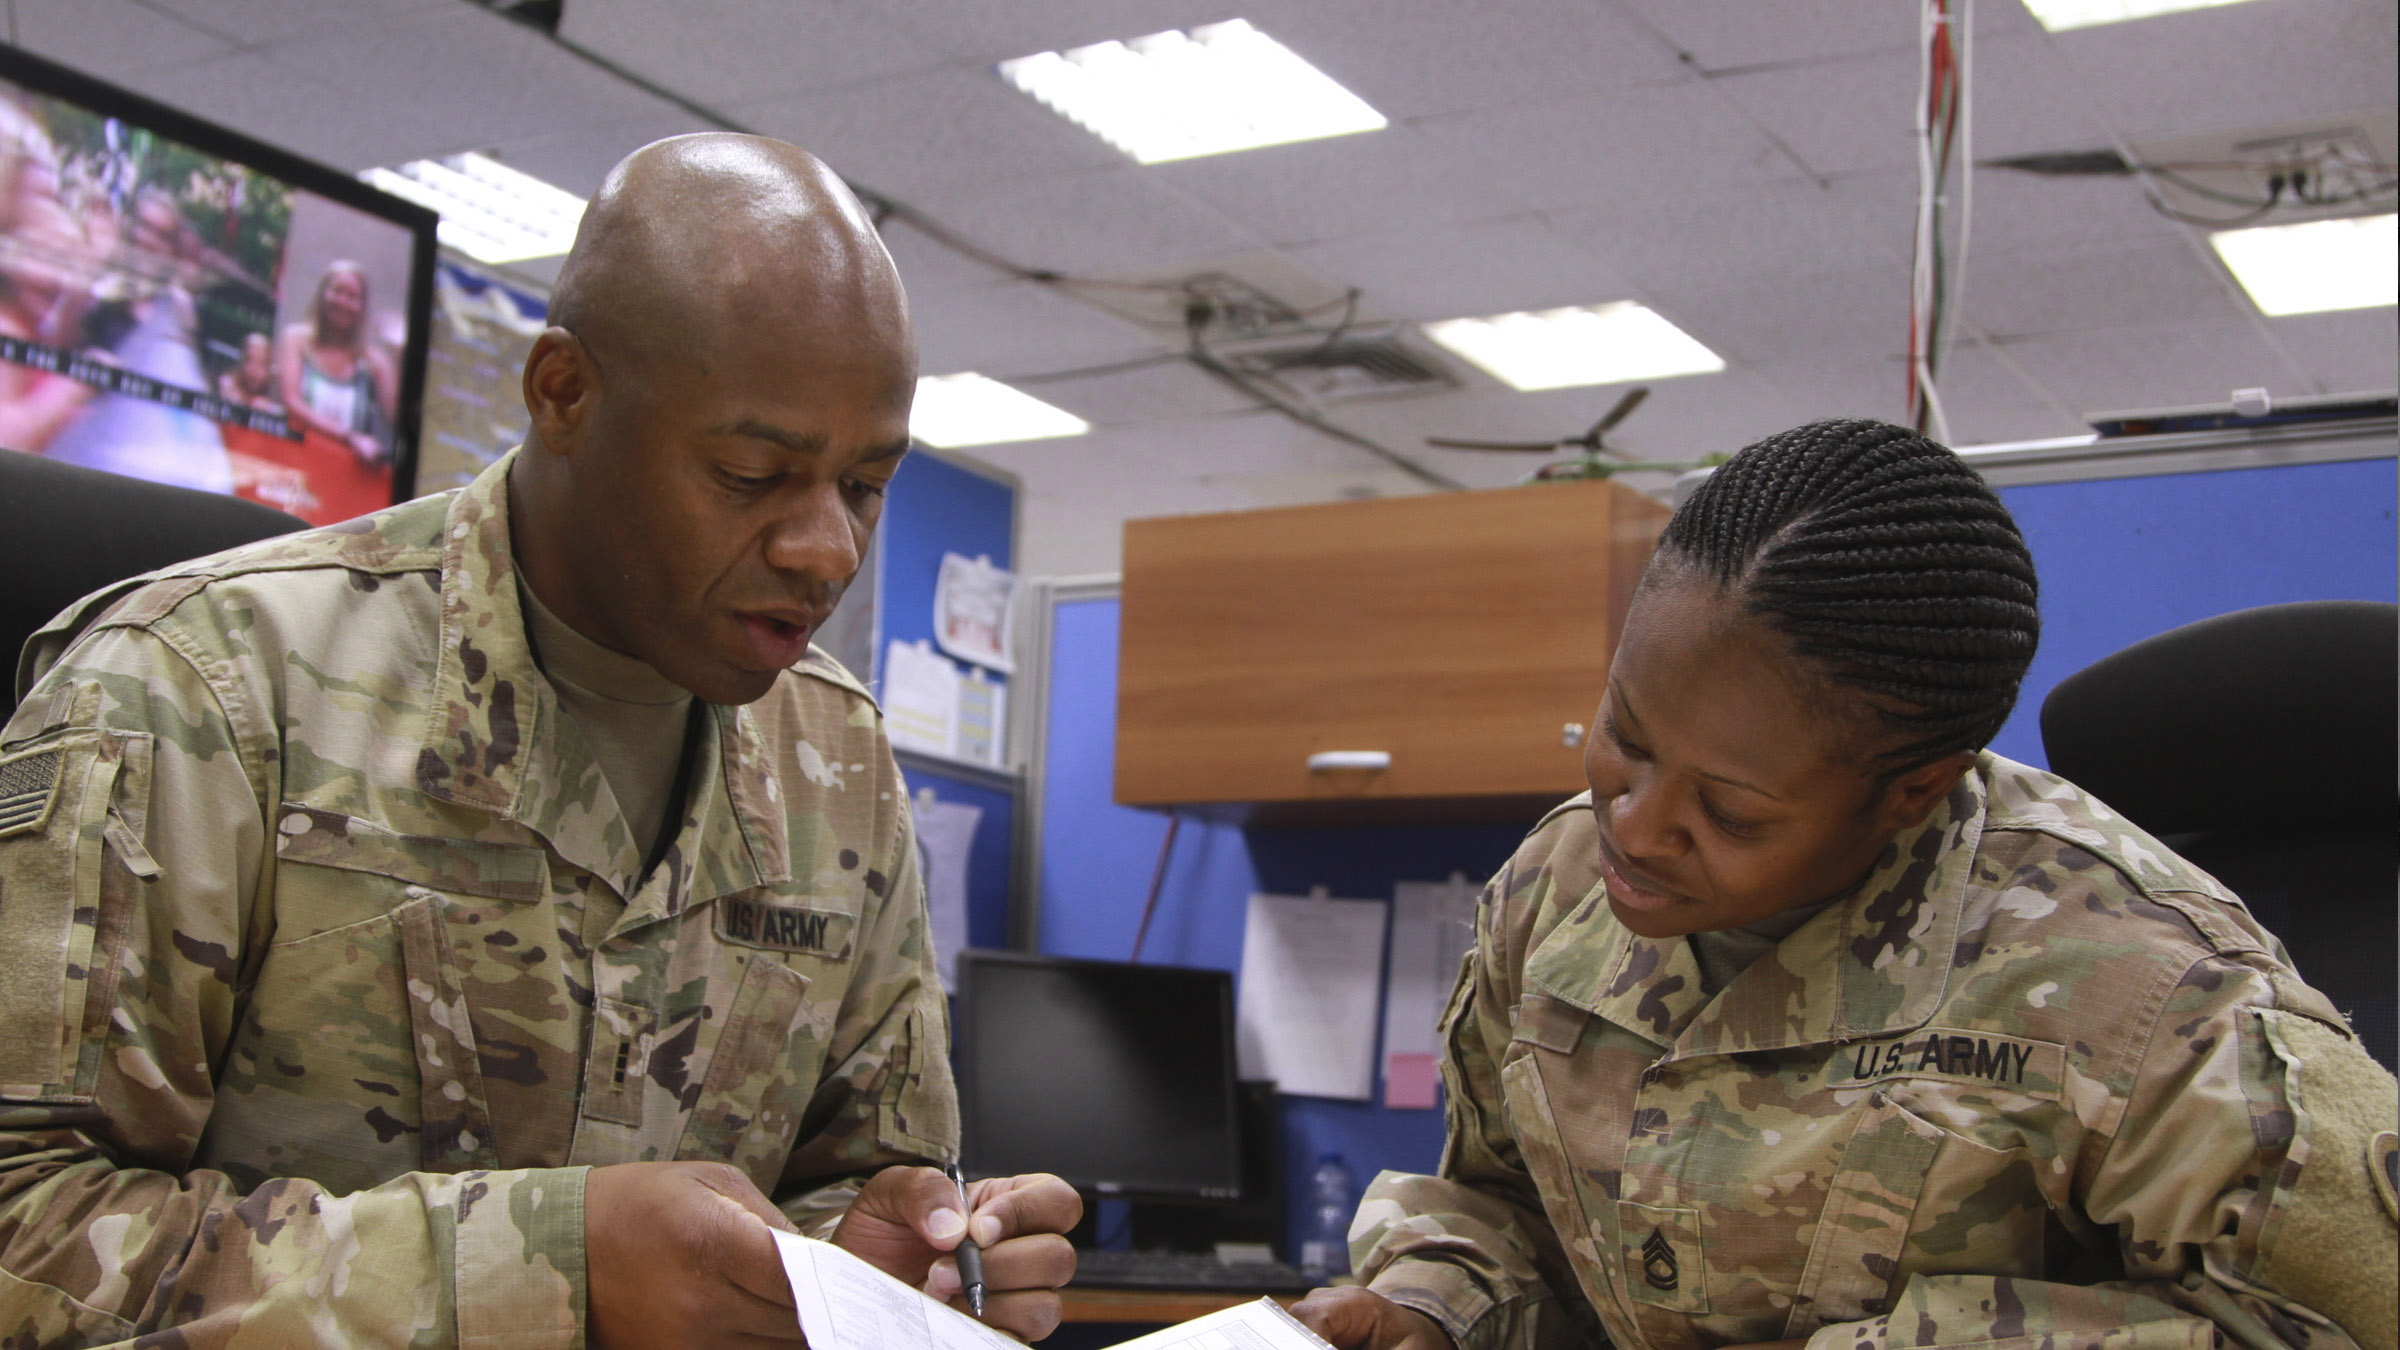 Service members review retirement benefits